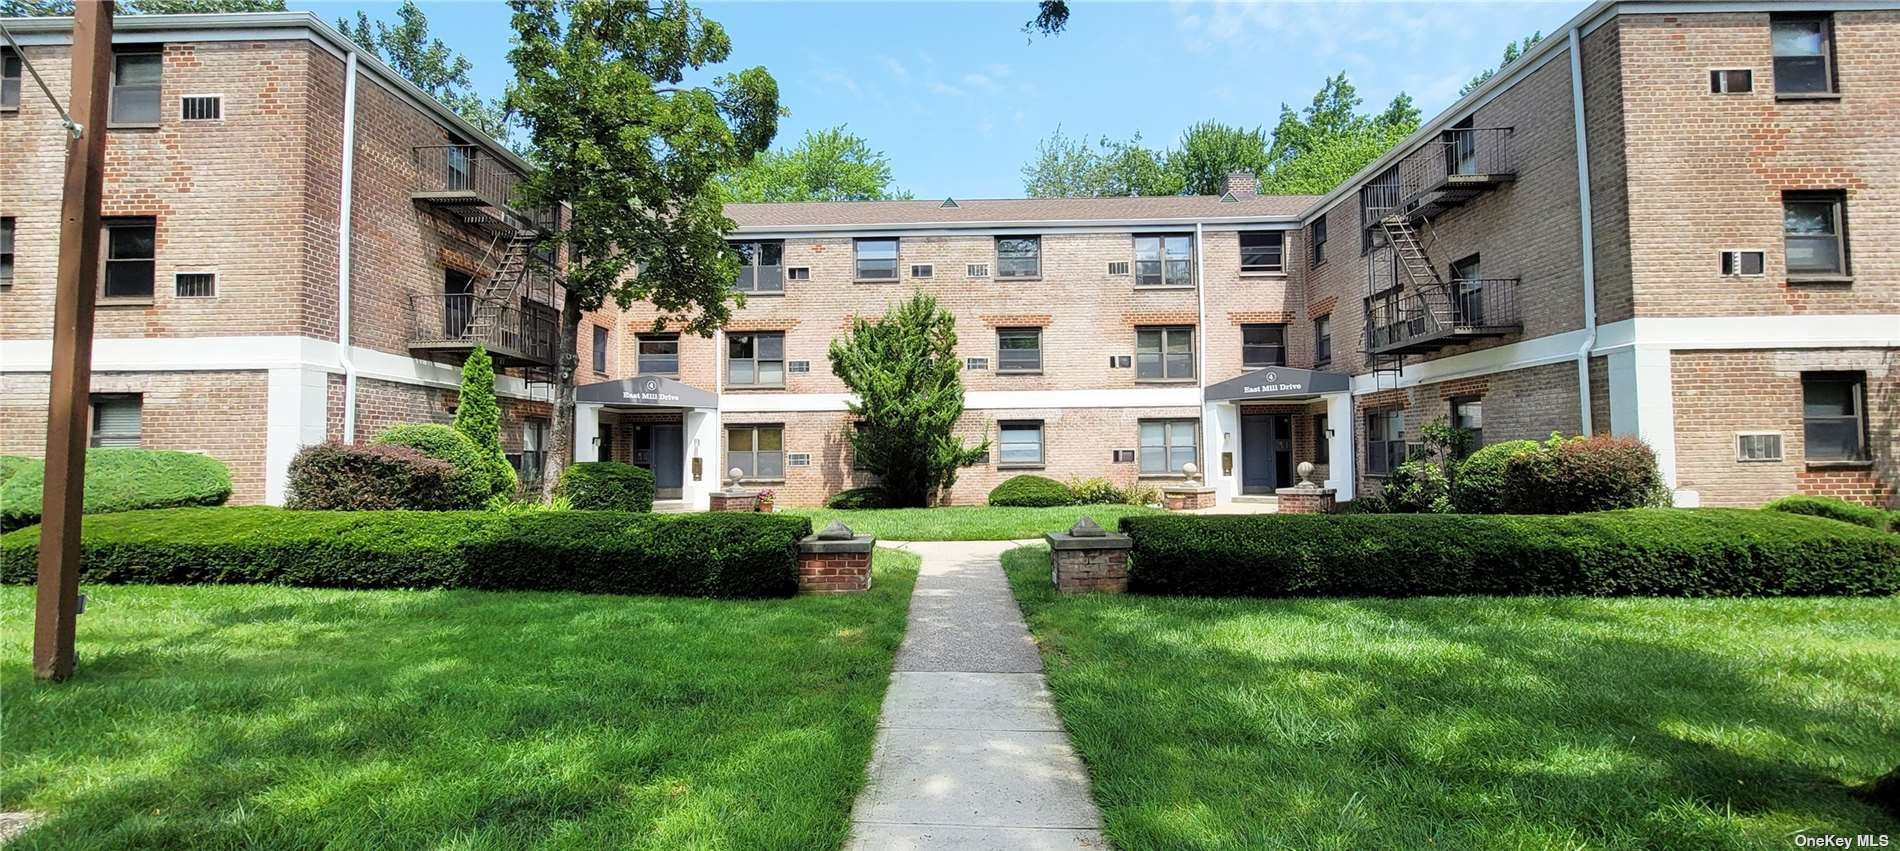 4 East Mill #1A, Great Neck, NY 11021 - MLS#: 3331575